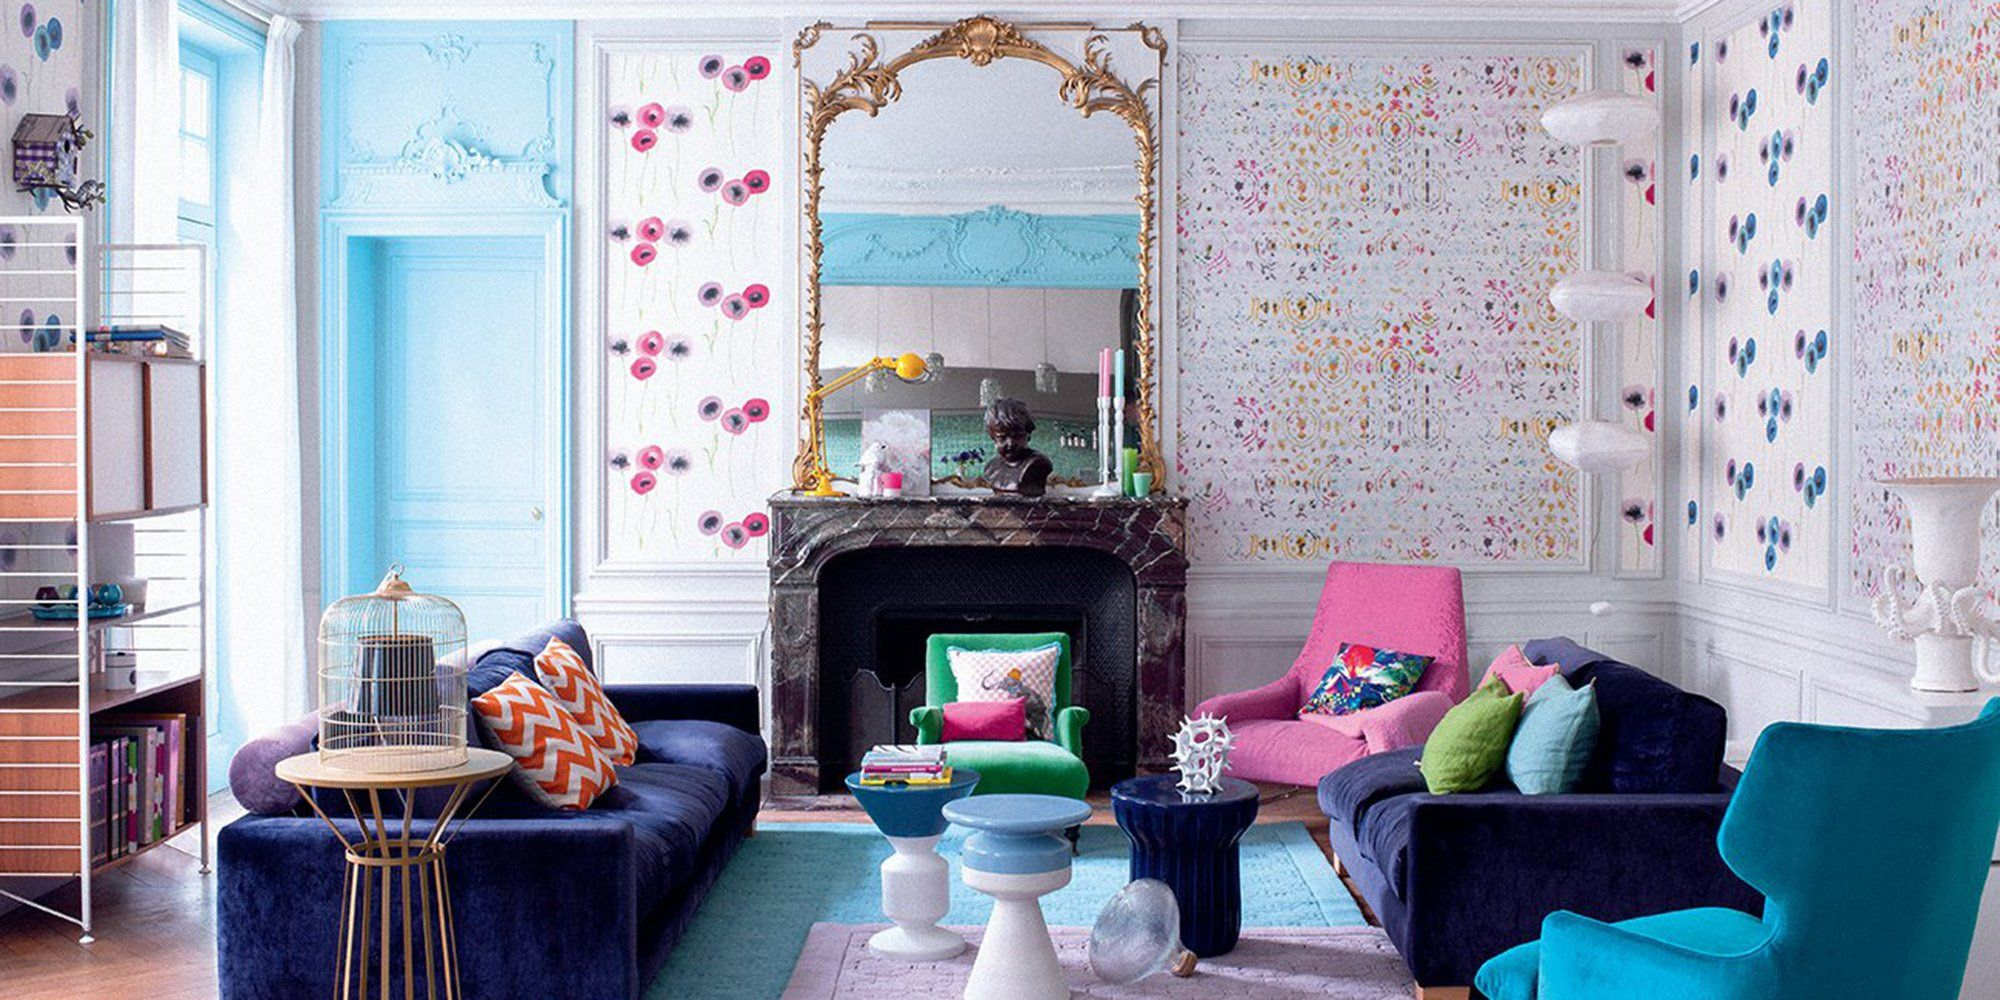 Salon Coloré Nos Plus Belles Inspirations Pour Un Salon Multicolore Salon Coloré Appartement Coloré Tendance Deco 2017